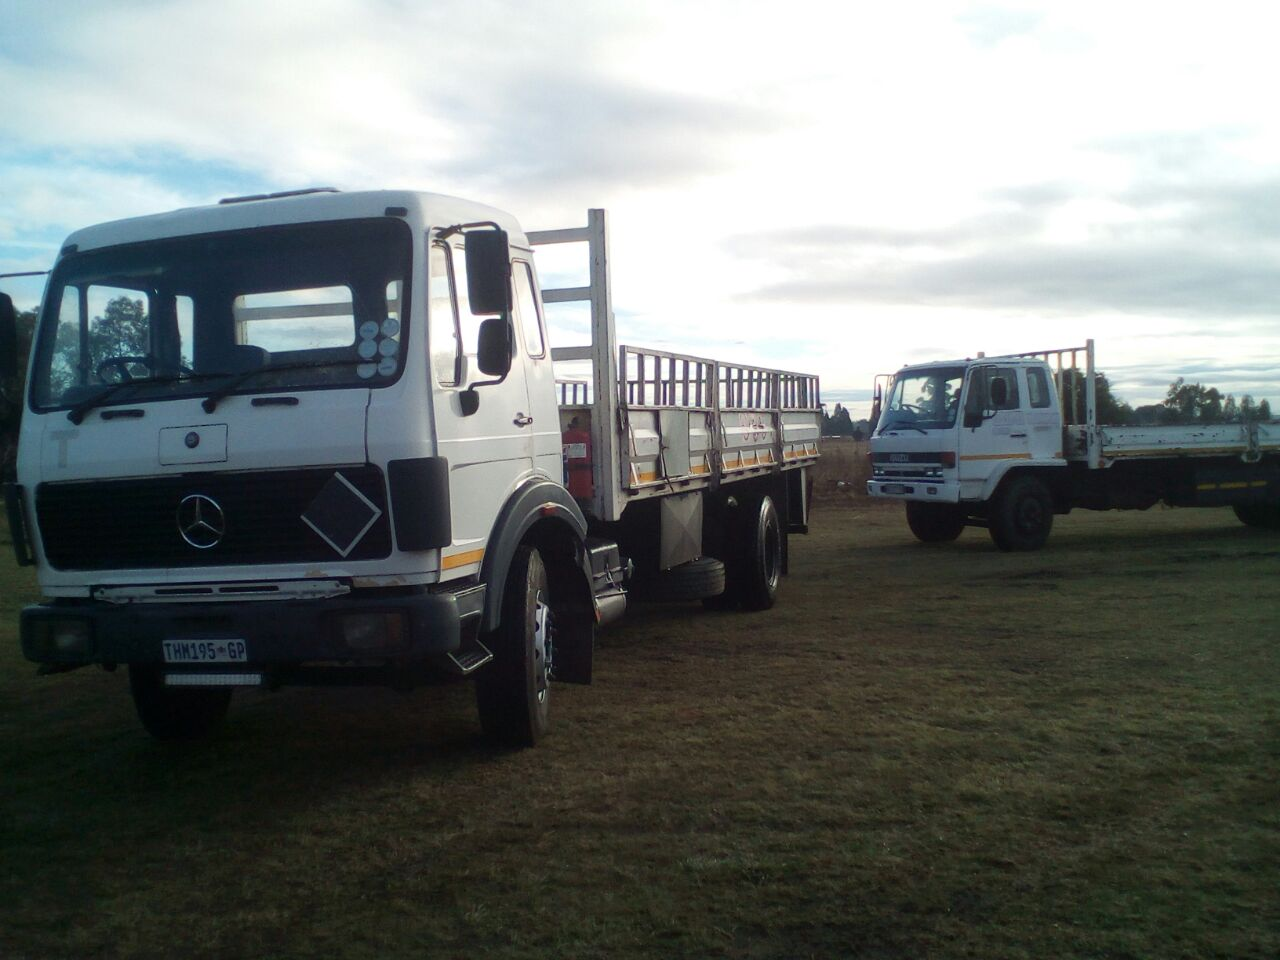 Trucks to hire,daily or long distance, anywhere, anyplace, anything in SA, truck from 8 tons up to 14 tons, dropsides, flat decks,